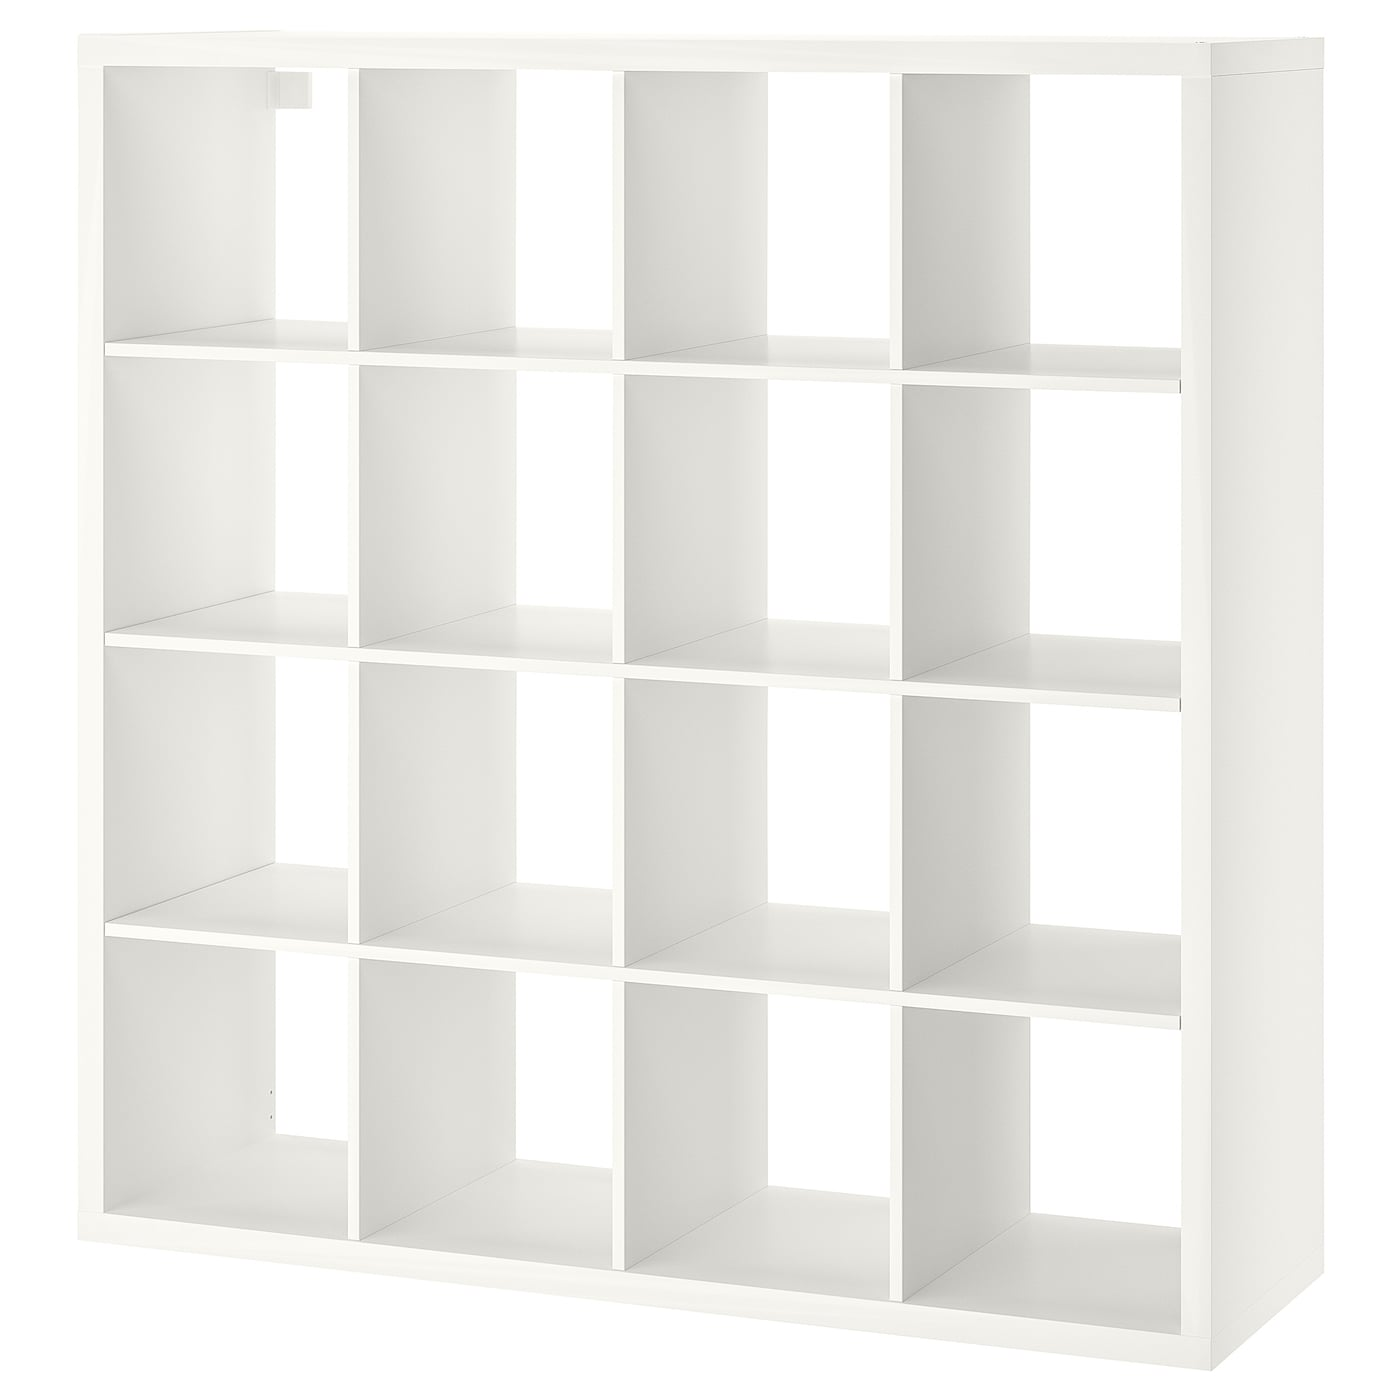 kallax shelving unit white 147 x 147 cm - ikea